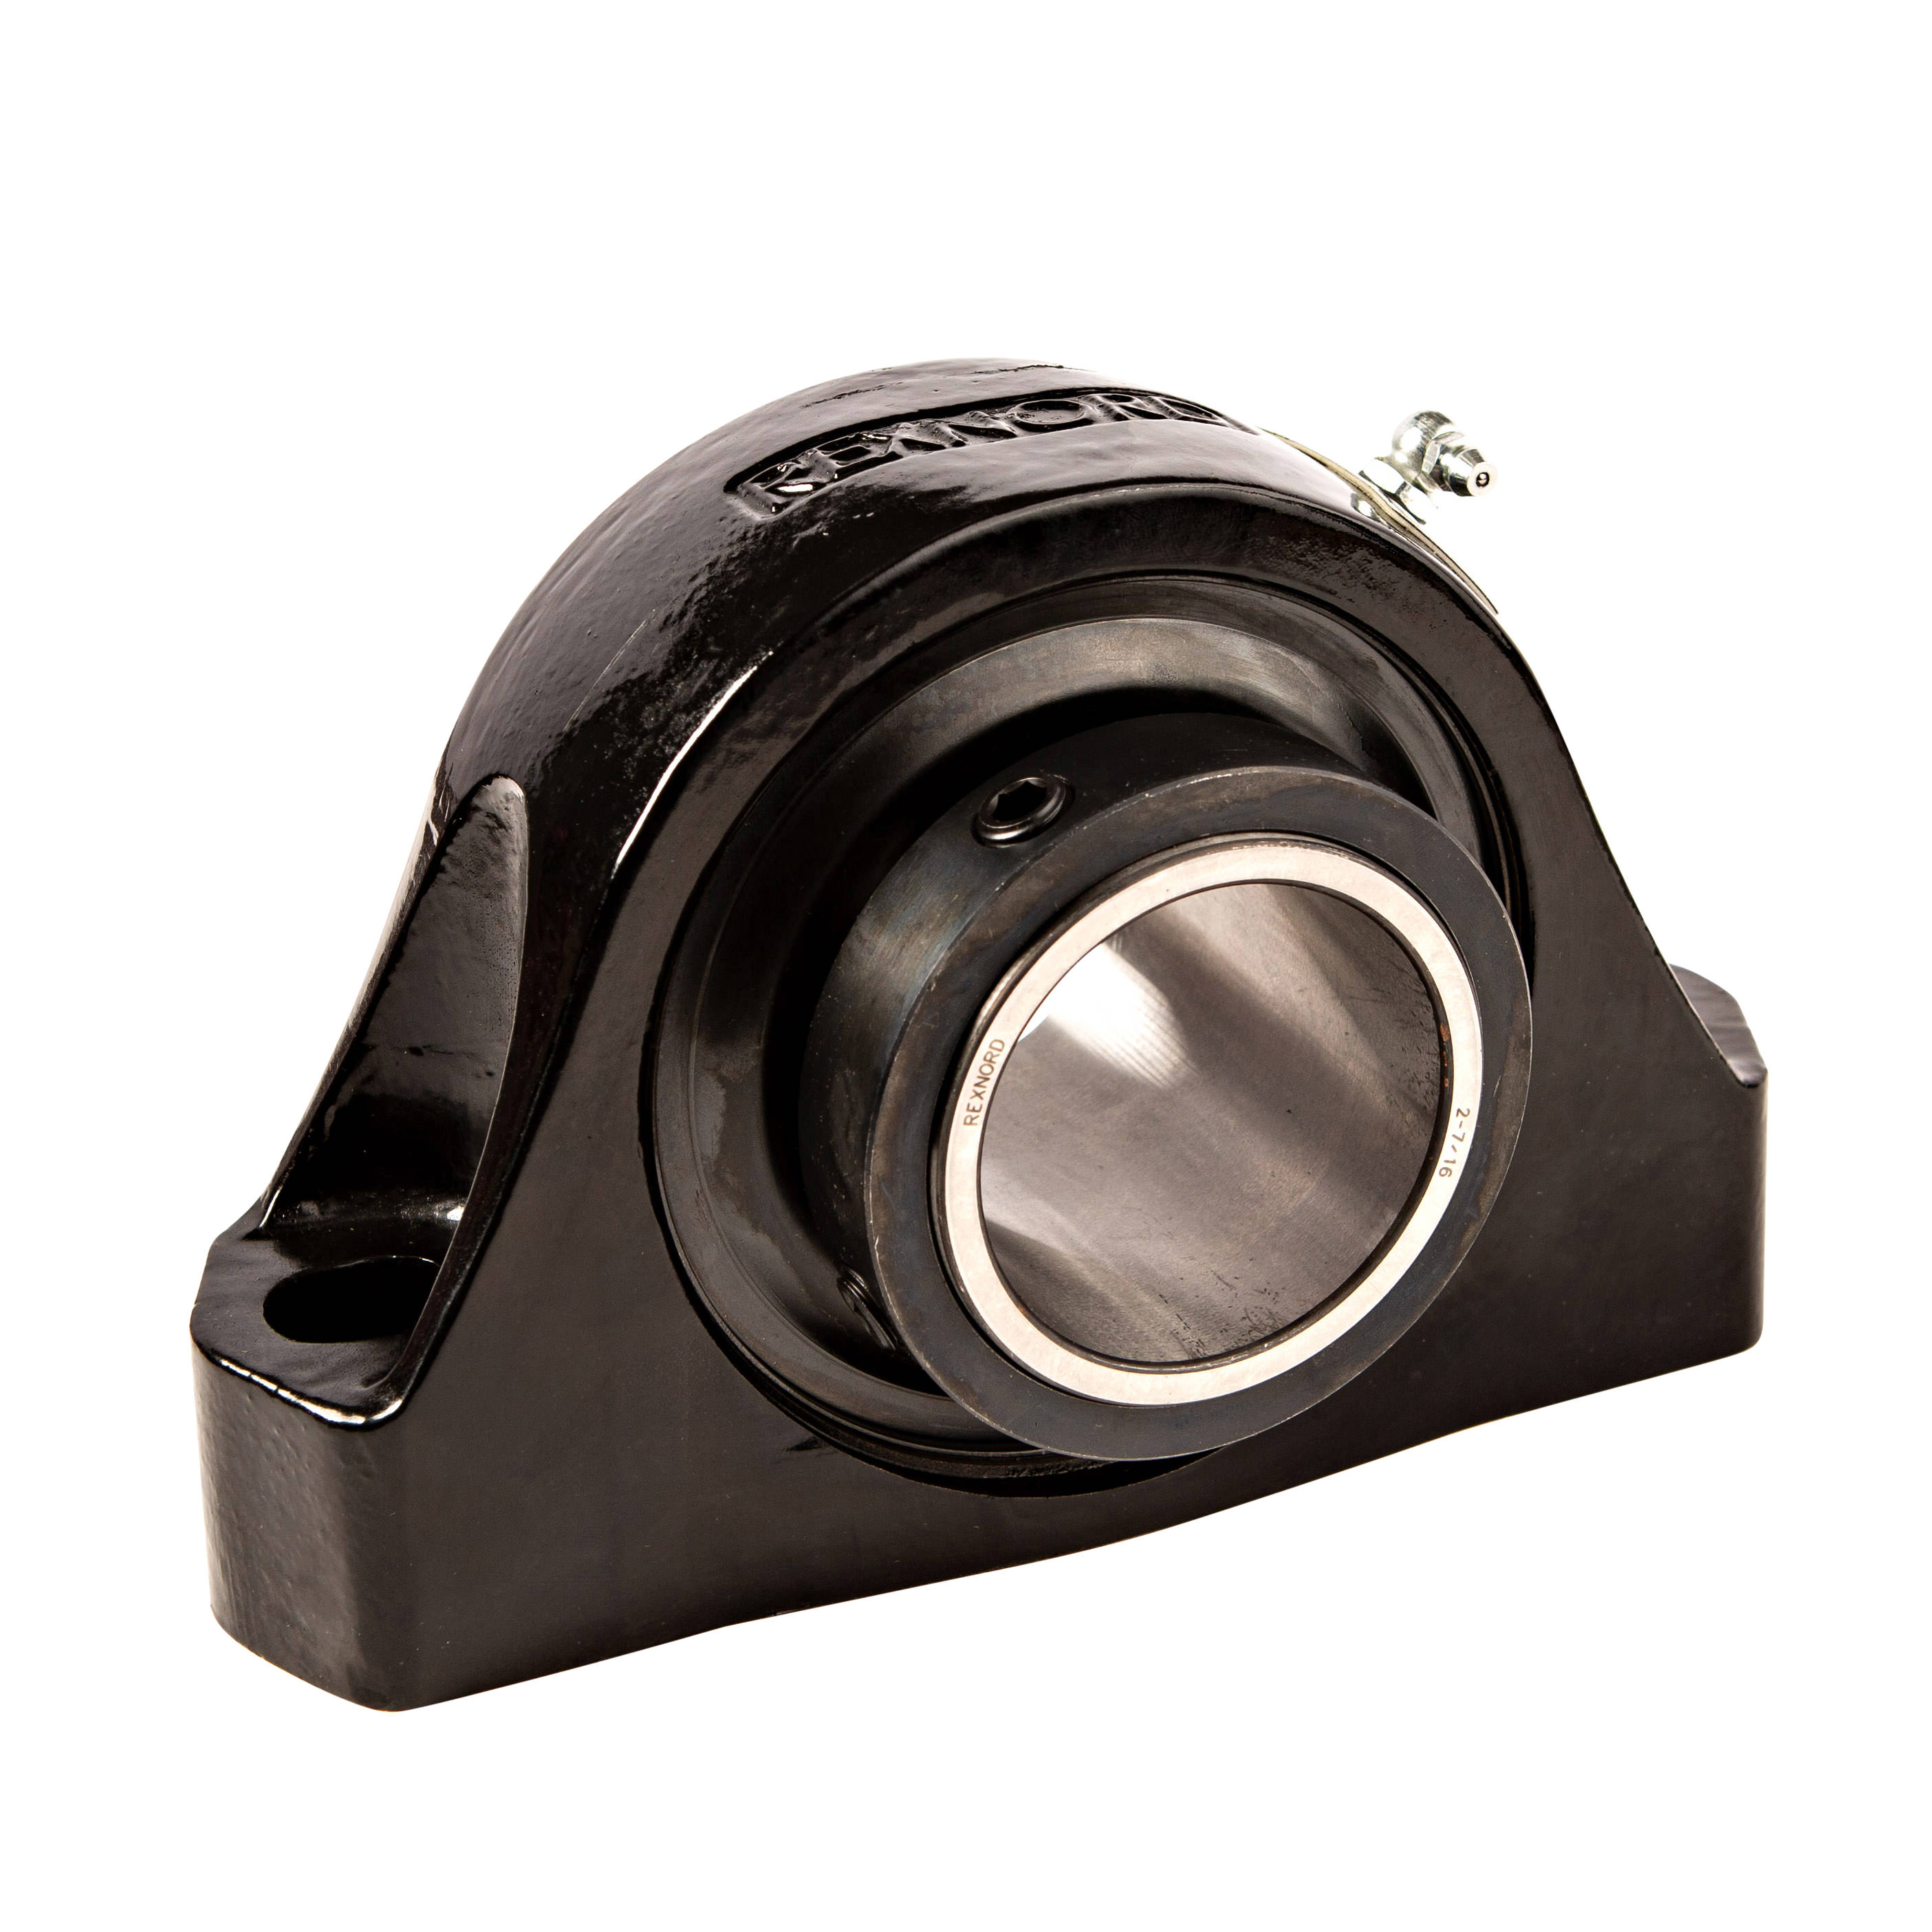 Rexnord 2-Bolt Pillow Block Front.jpg